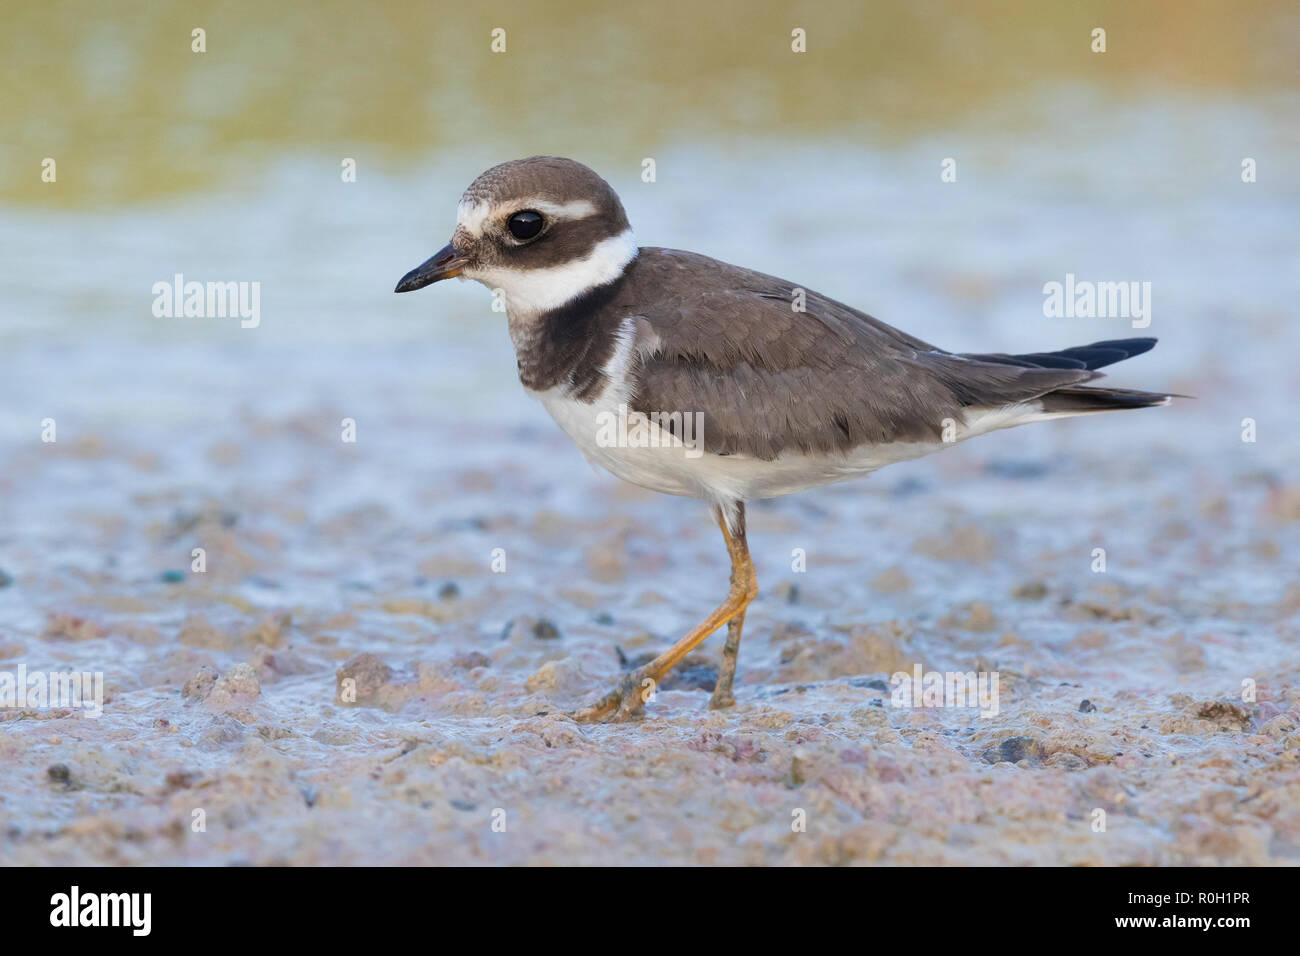 Ringed Plover (Charadrius hiaticula), side view of an adult in winter plumage in Oman - Stock Image